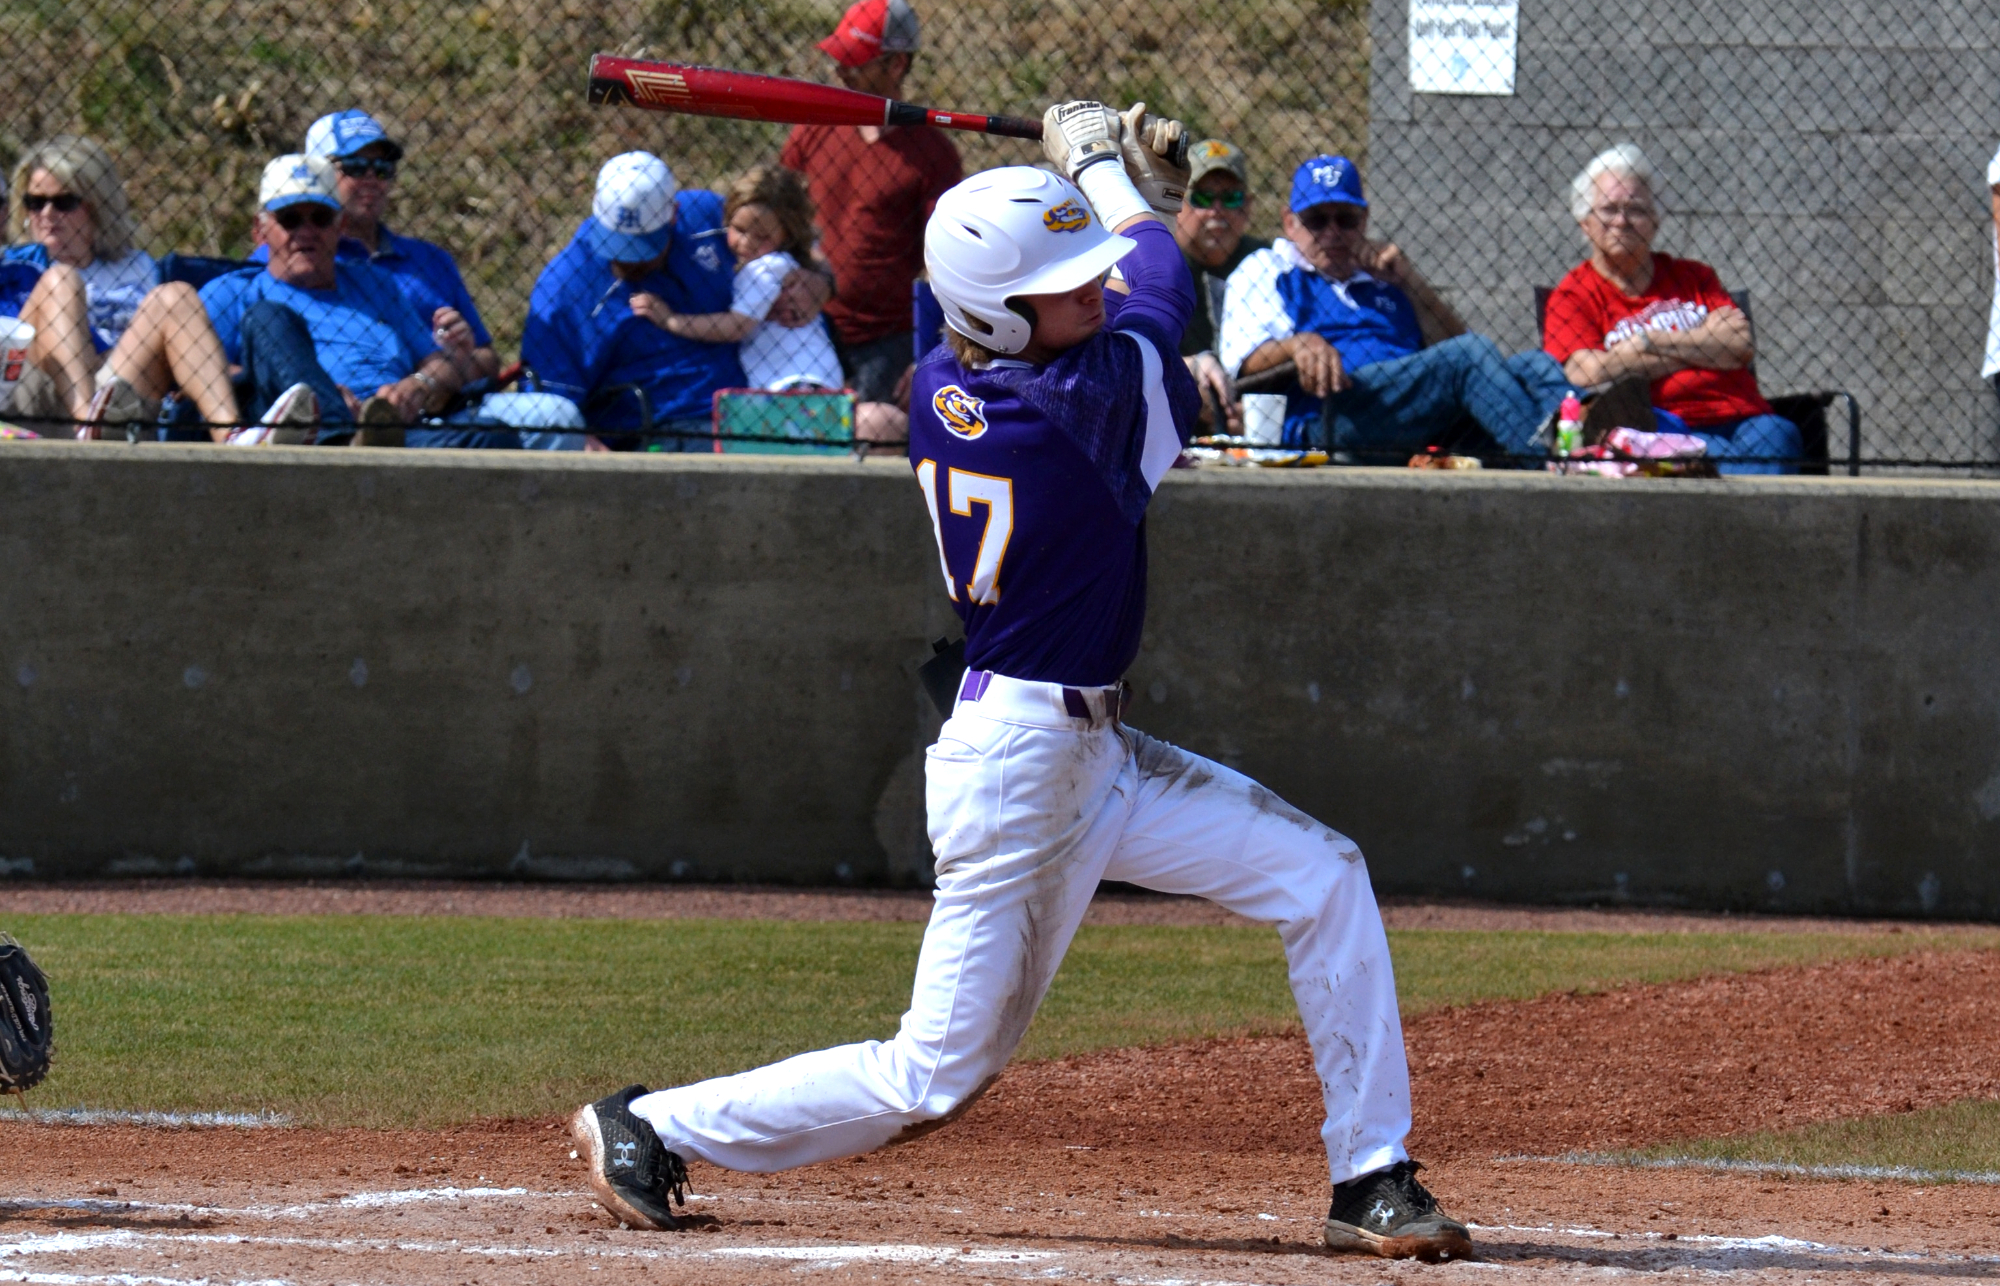 Springville sweeps Fort Payne, draws Gardendale in Round 2